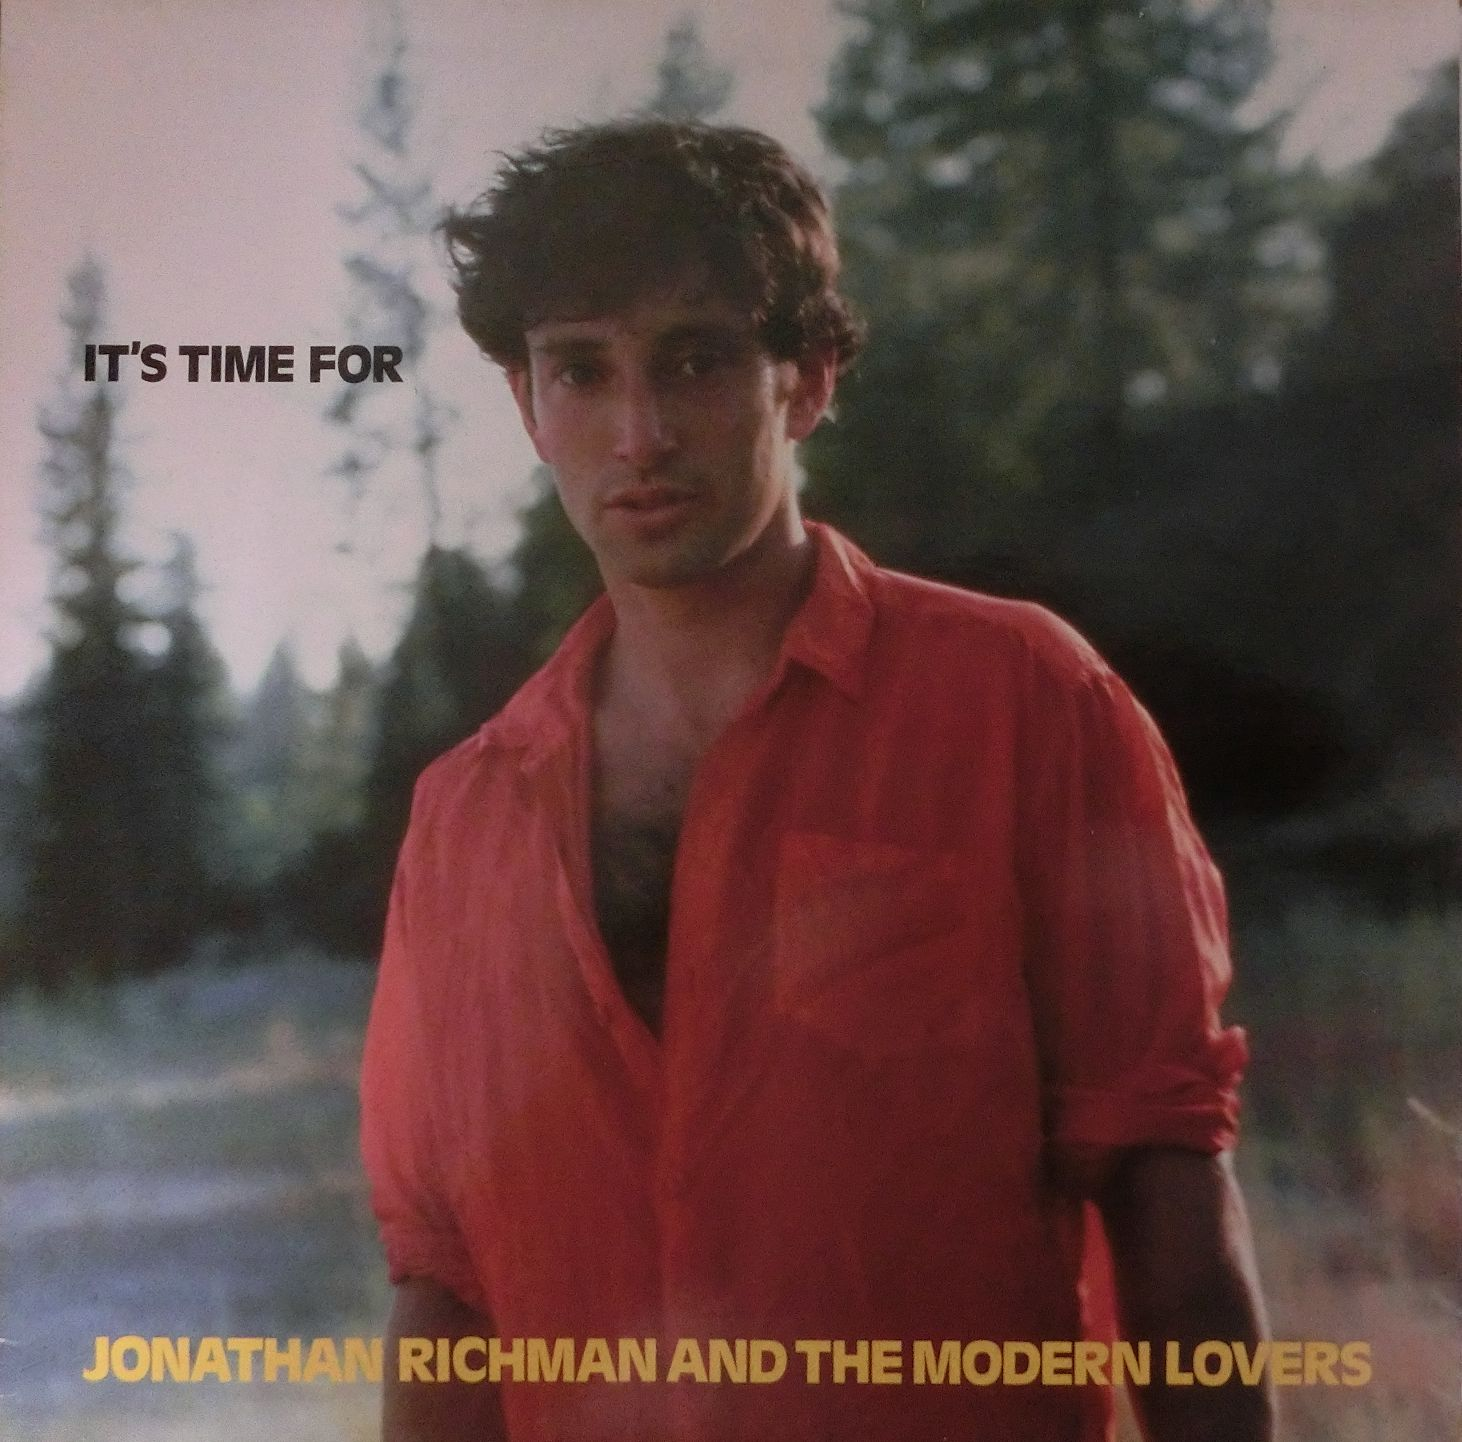 Jonathan Richman & The Modern Lovers/It's Time For